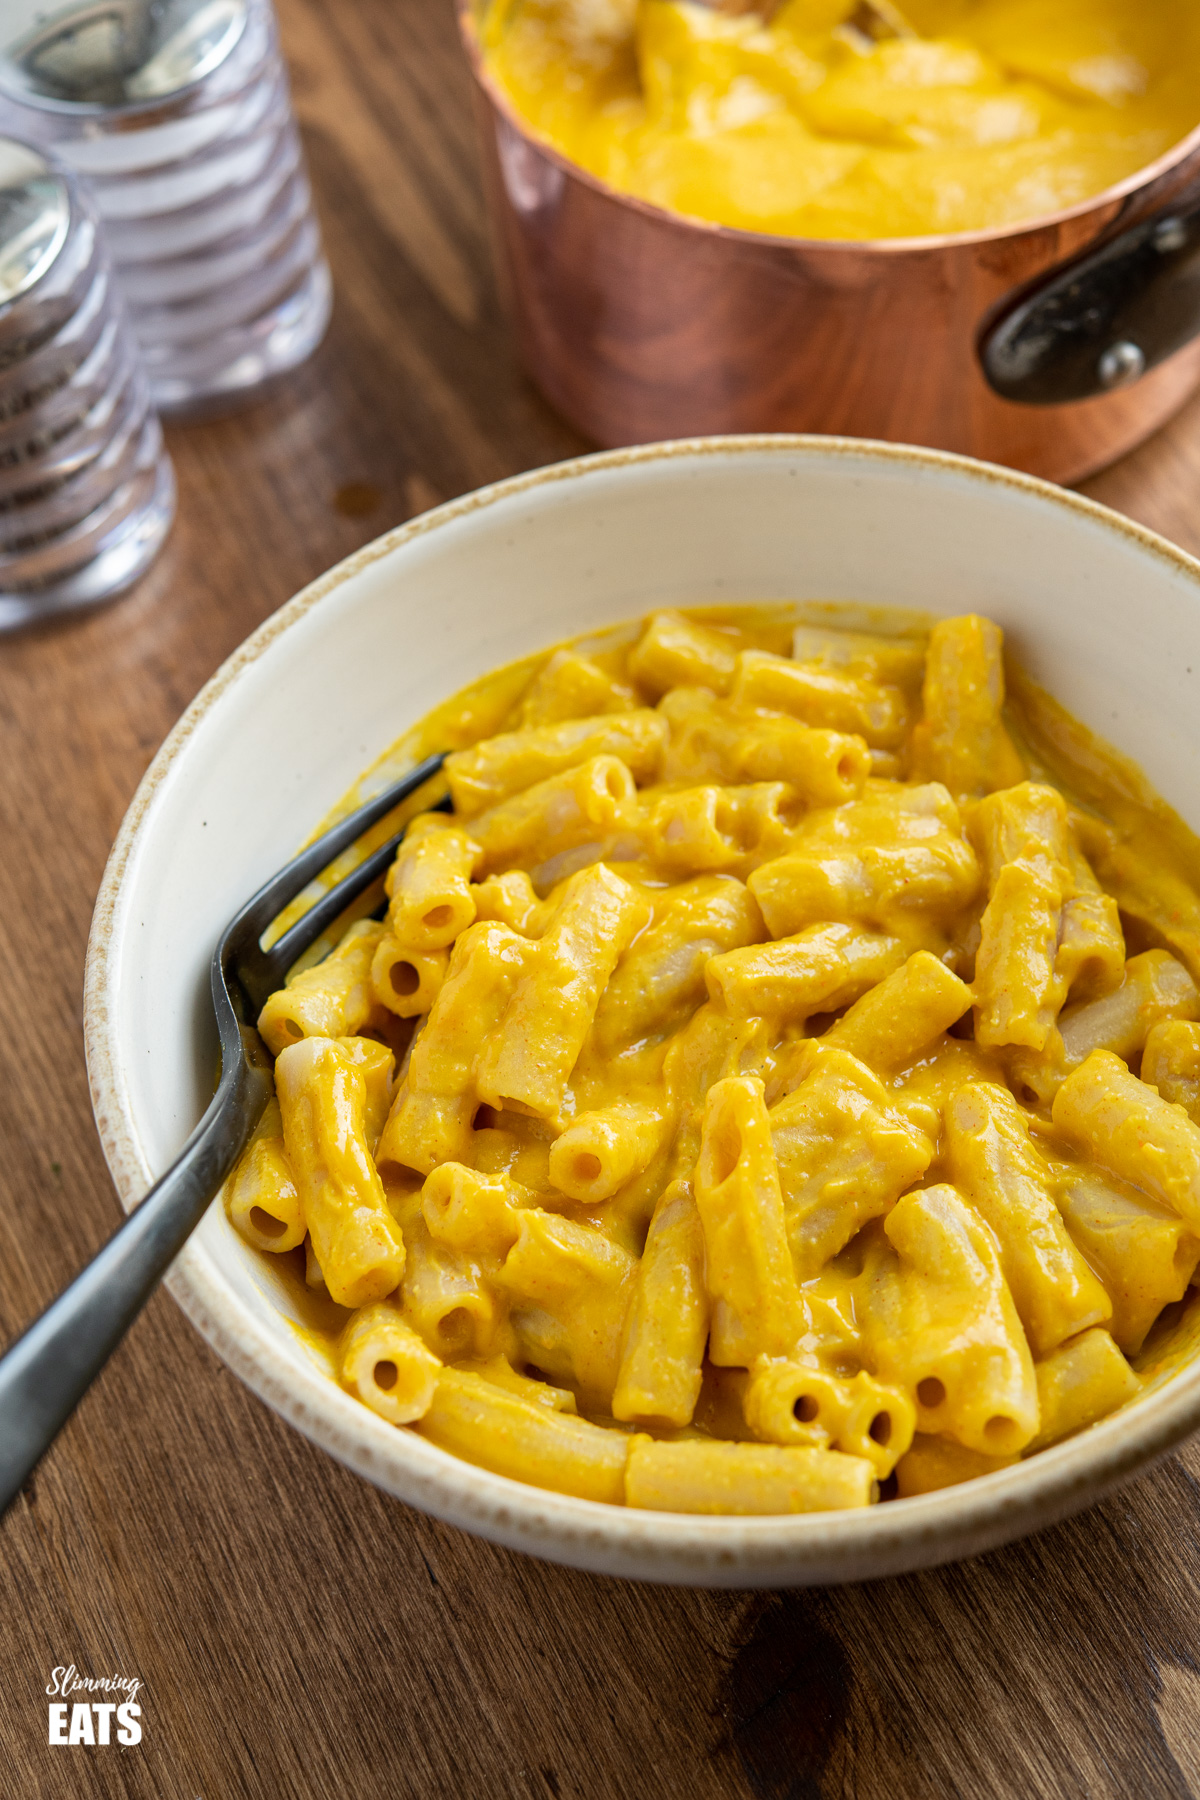 Delicious Creamy Vegan Cheese Sauce in bowl over pasta with black fork